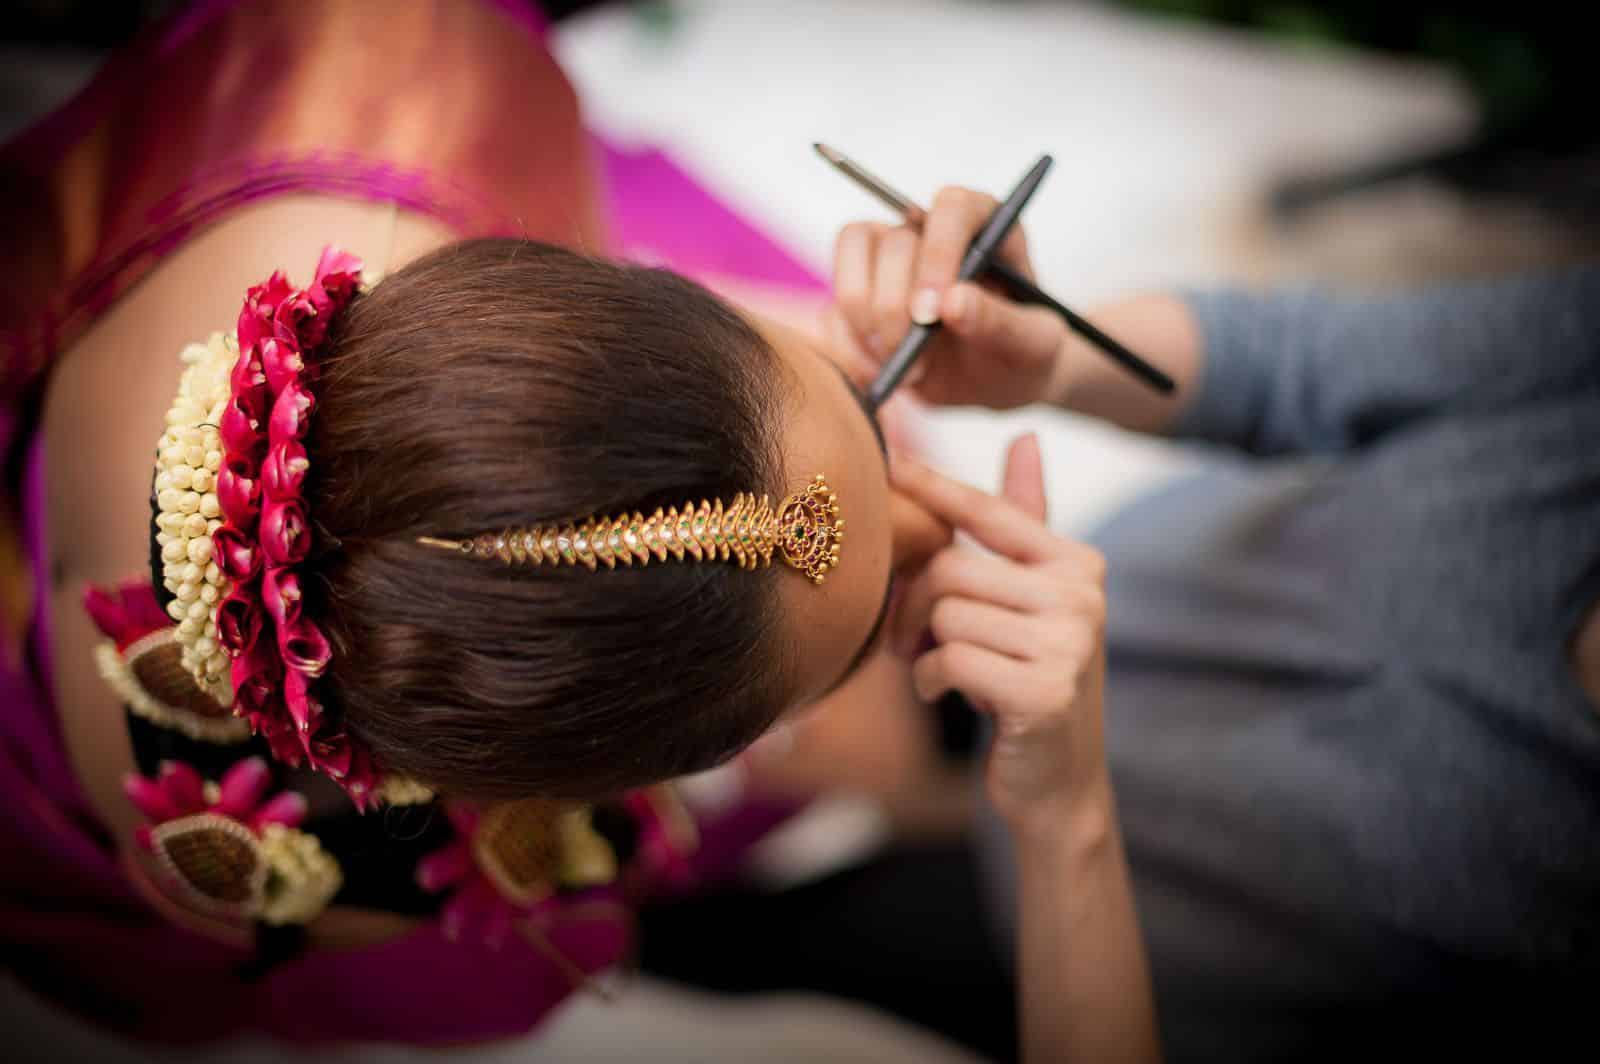 wedding-photography-bride-eye-makeup-topshot-getting-ready